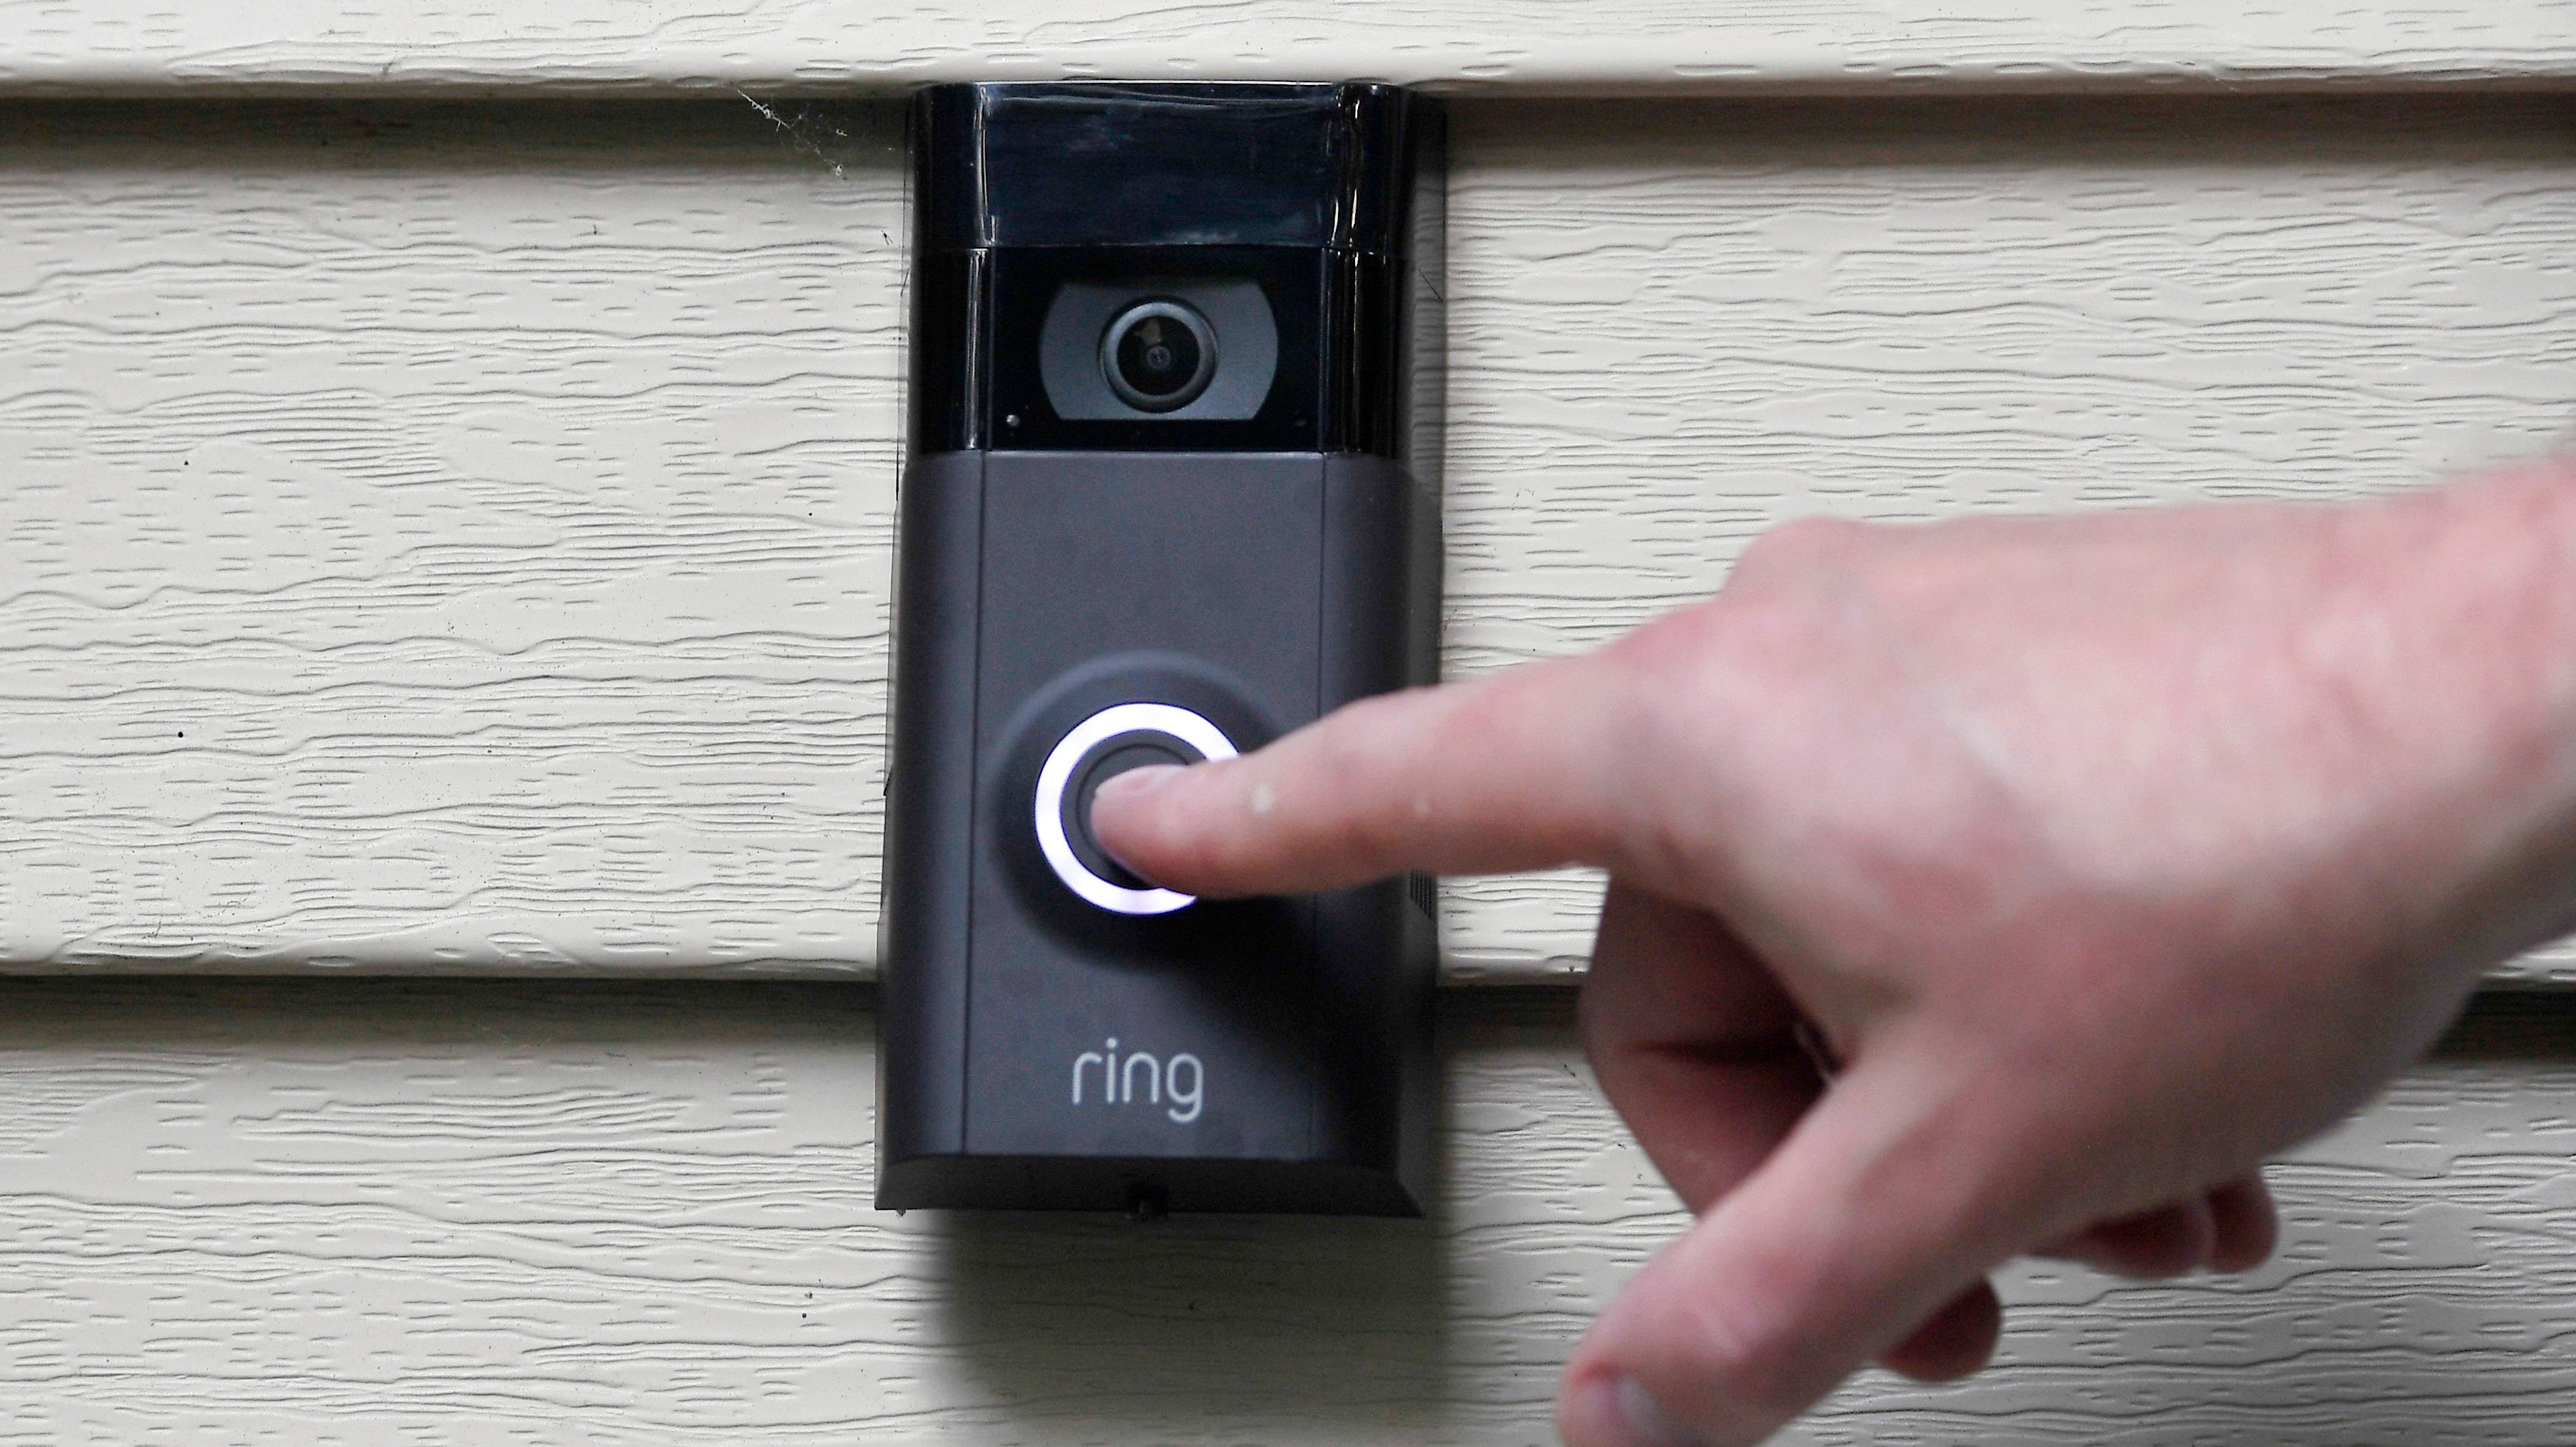 Ring's Security Update Isn't Enough, U.S. Senator Ron Wyden Says